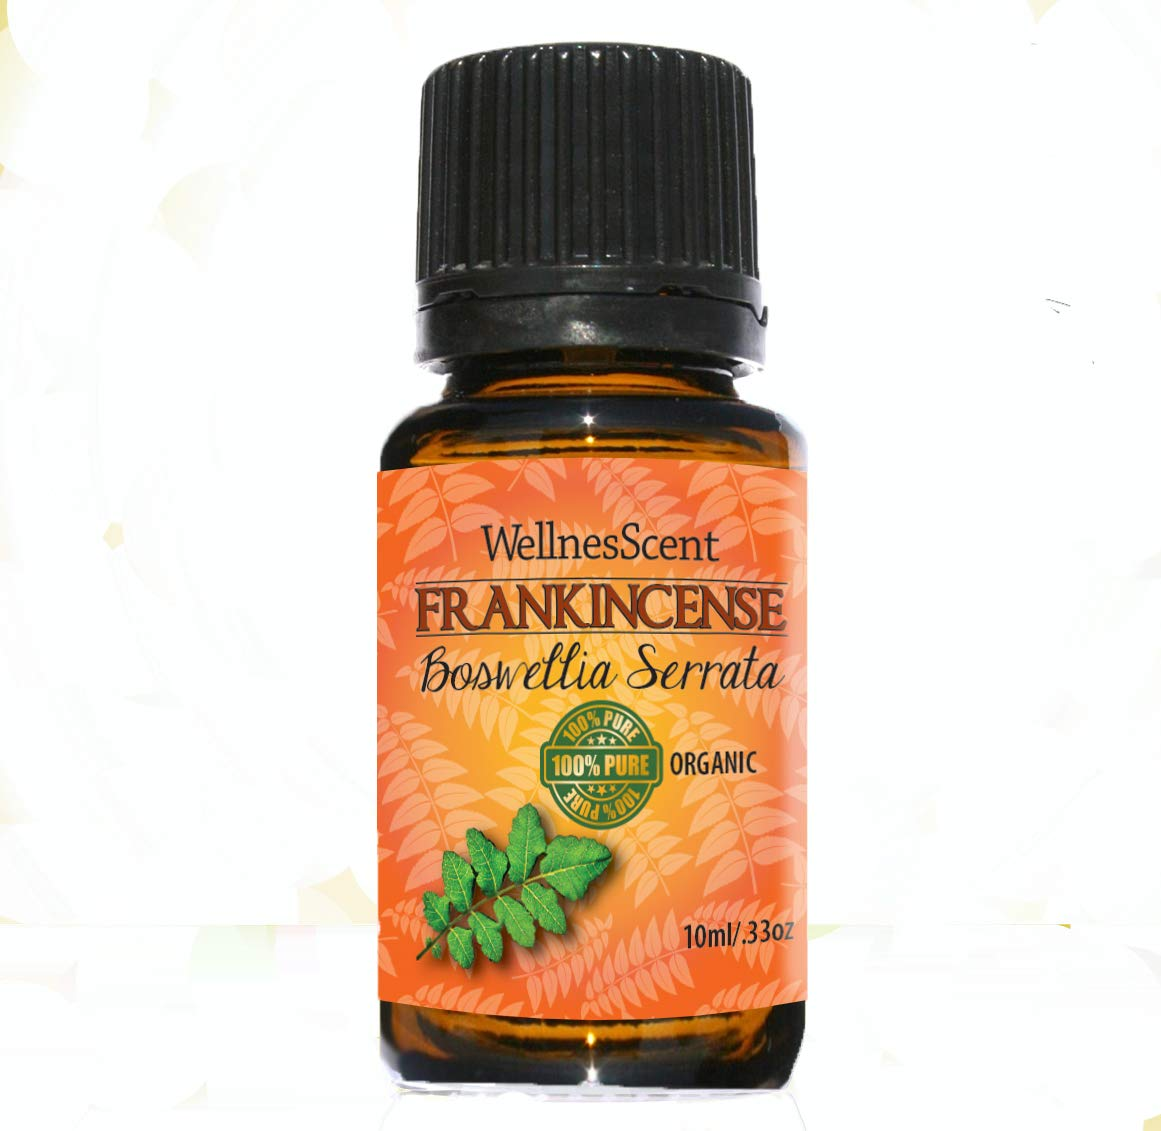 Frankincense Essential Oil - 100% Pure - Certified Organic, 10 ml Boswellia Serrata. WellnesScent MPN-KSC-81716B